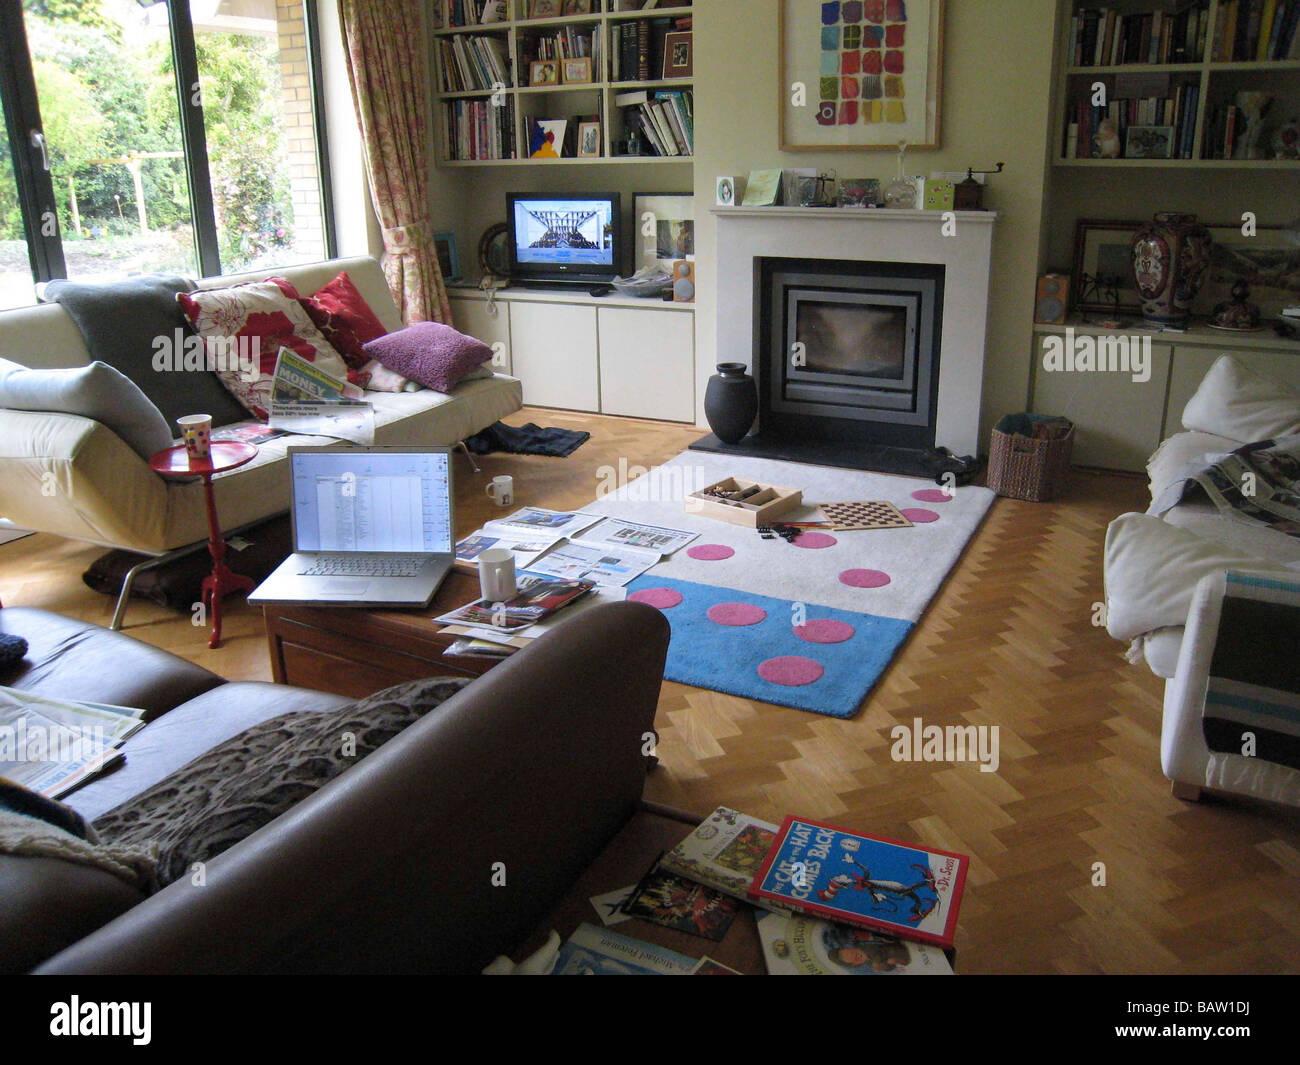 messy family living room Stock Photo, Royalty Free Image ...